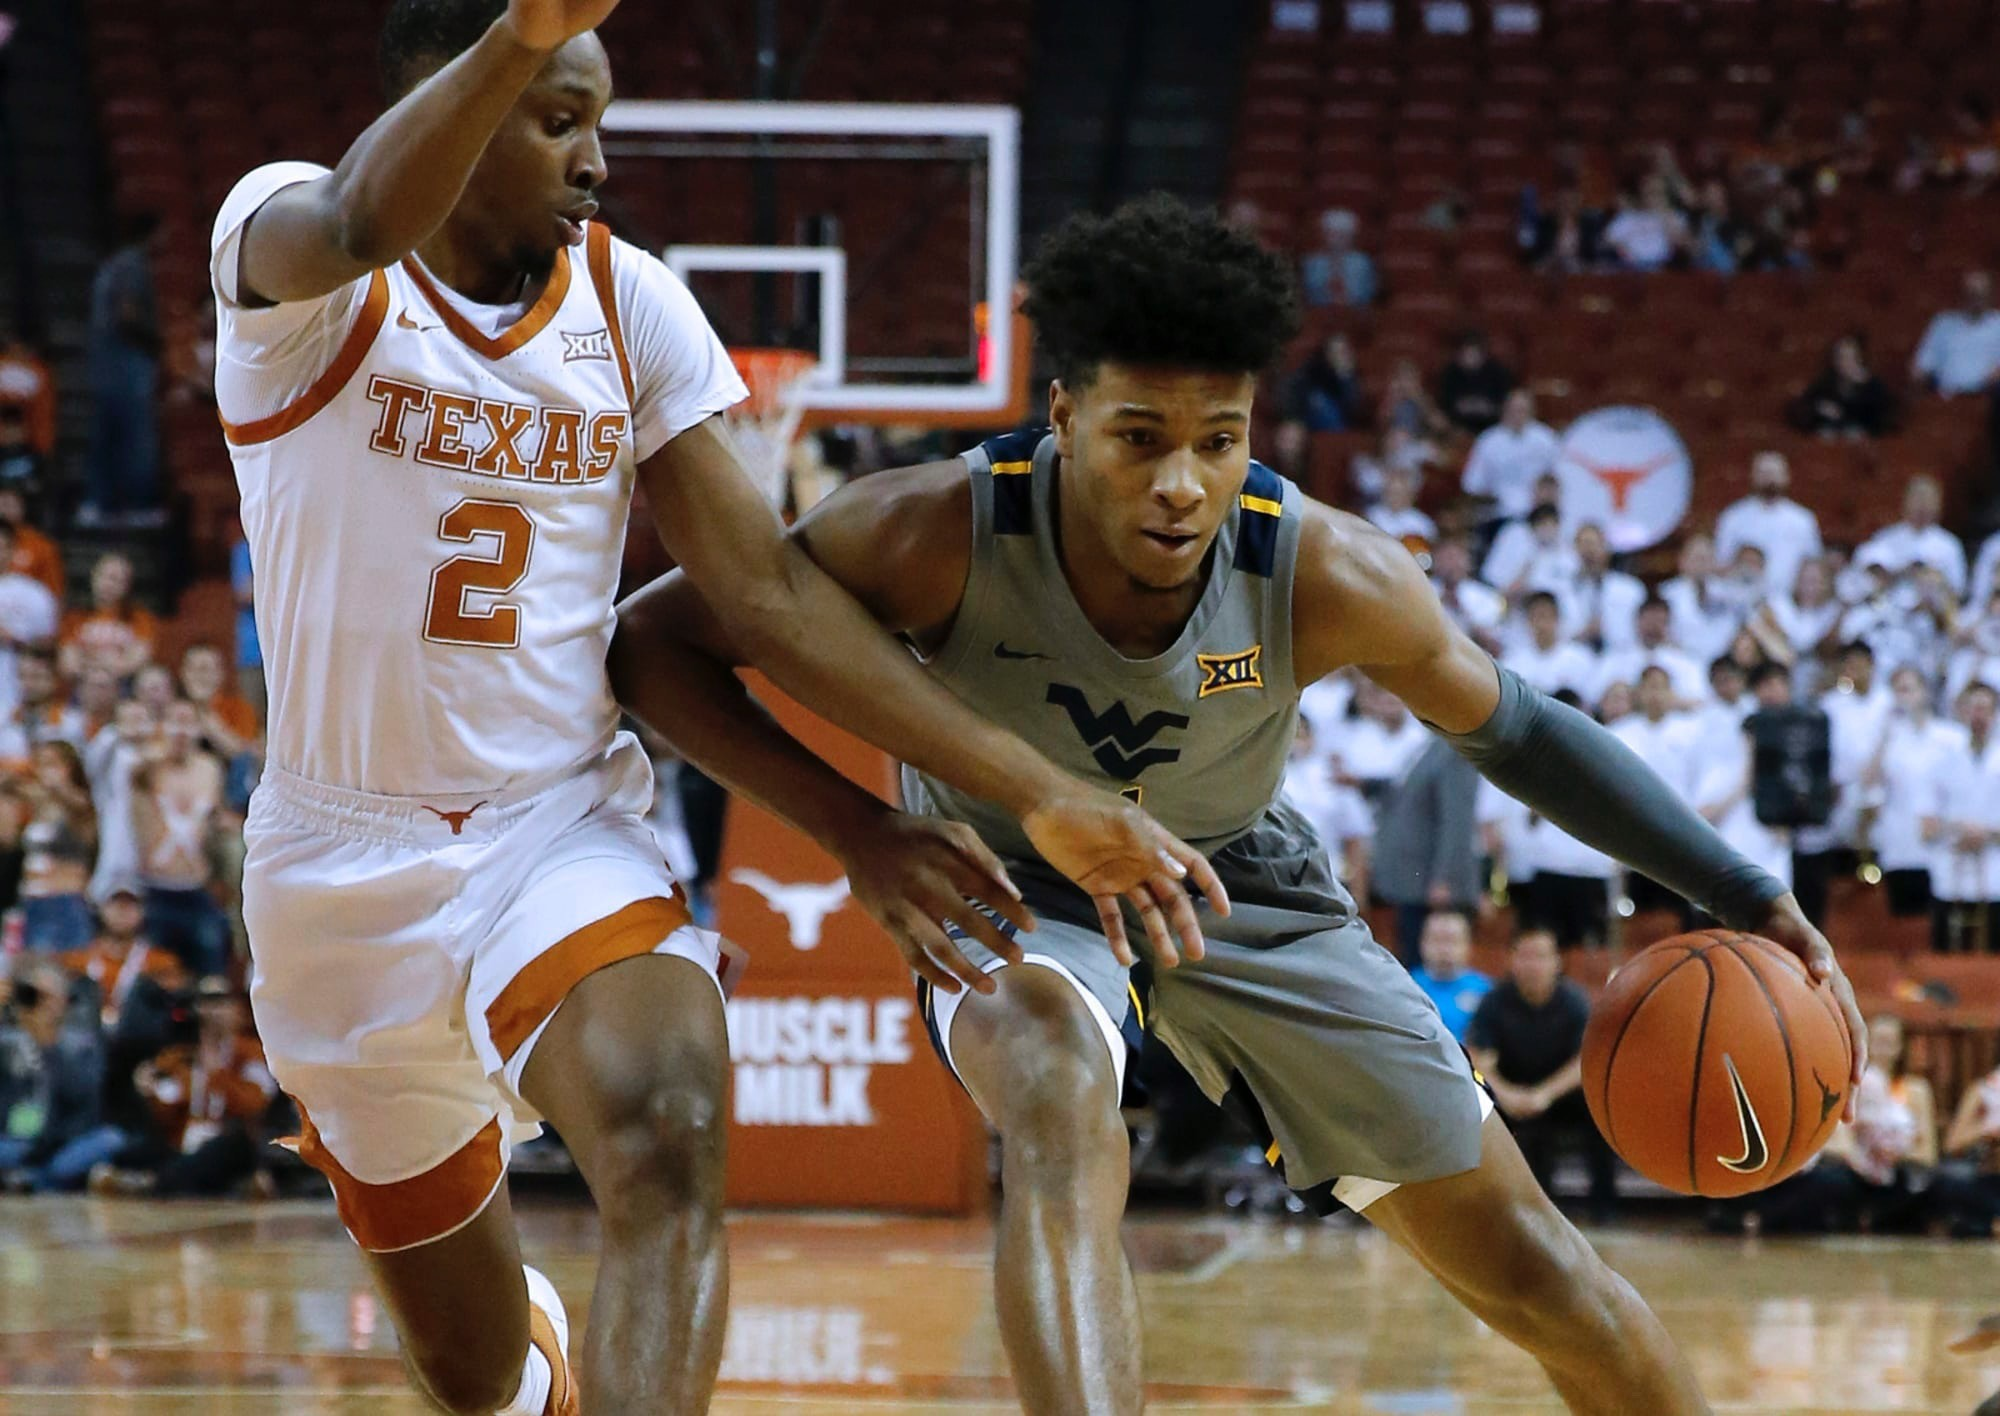 Texas 2 attacking WVU and about to take away the ball.